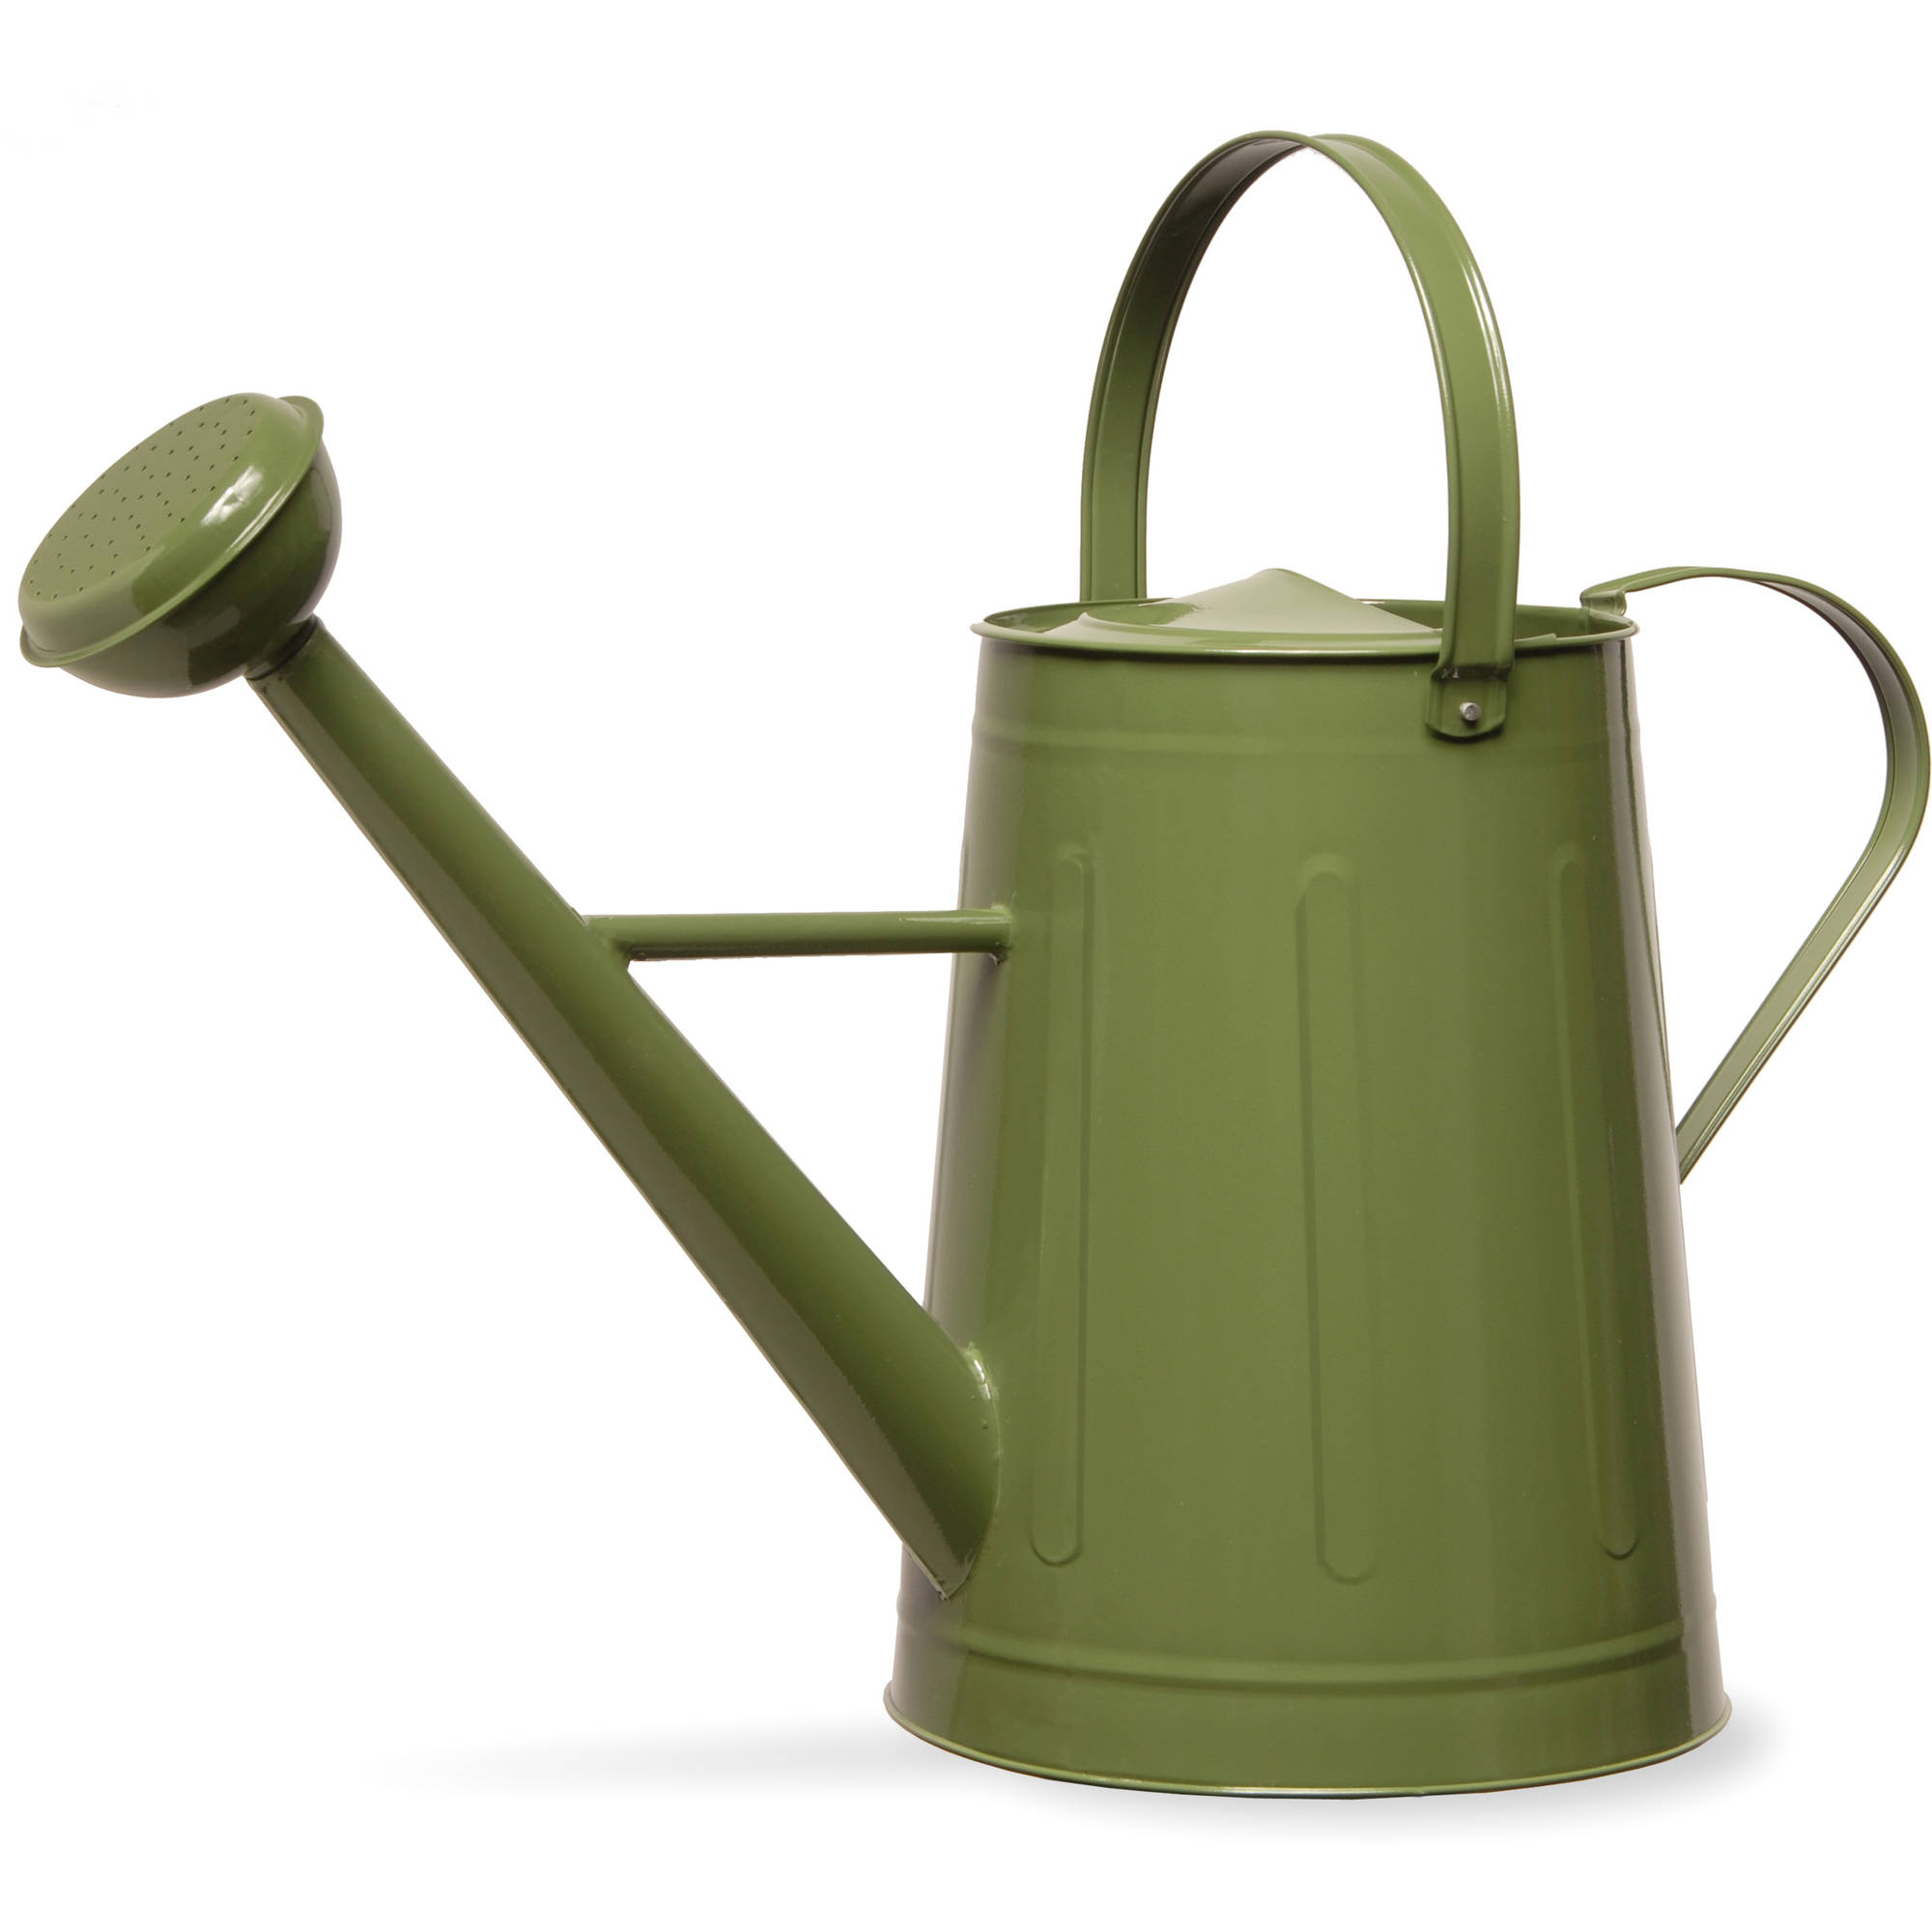 "17"" Garden Accents Antique Watering Can by National Tree"